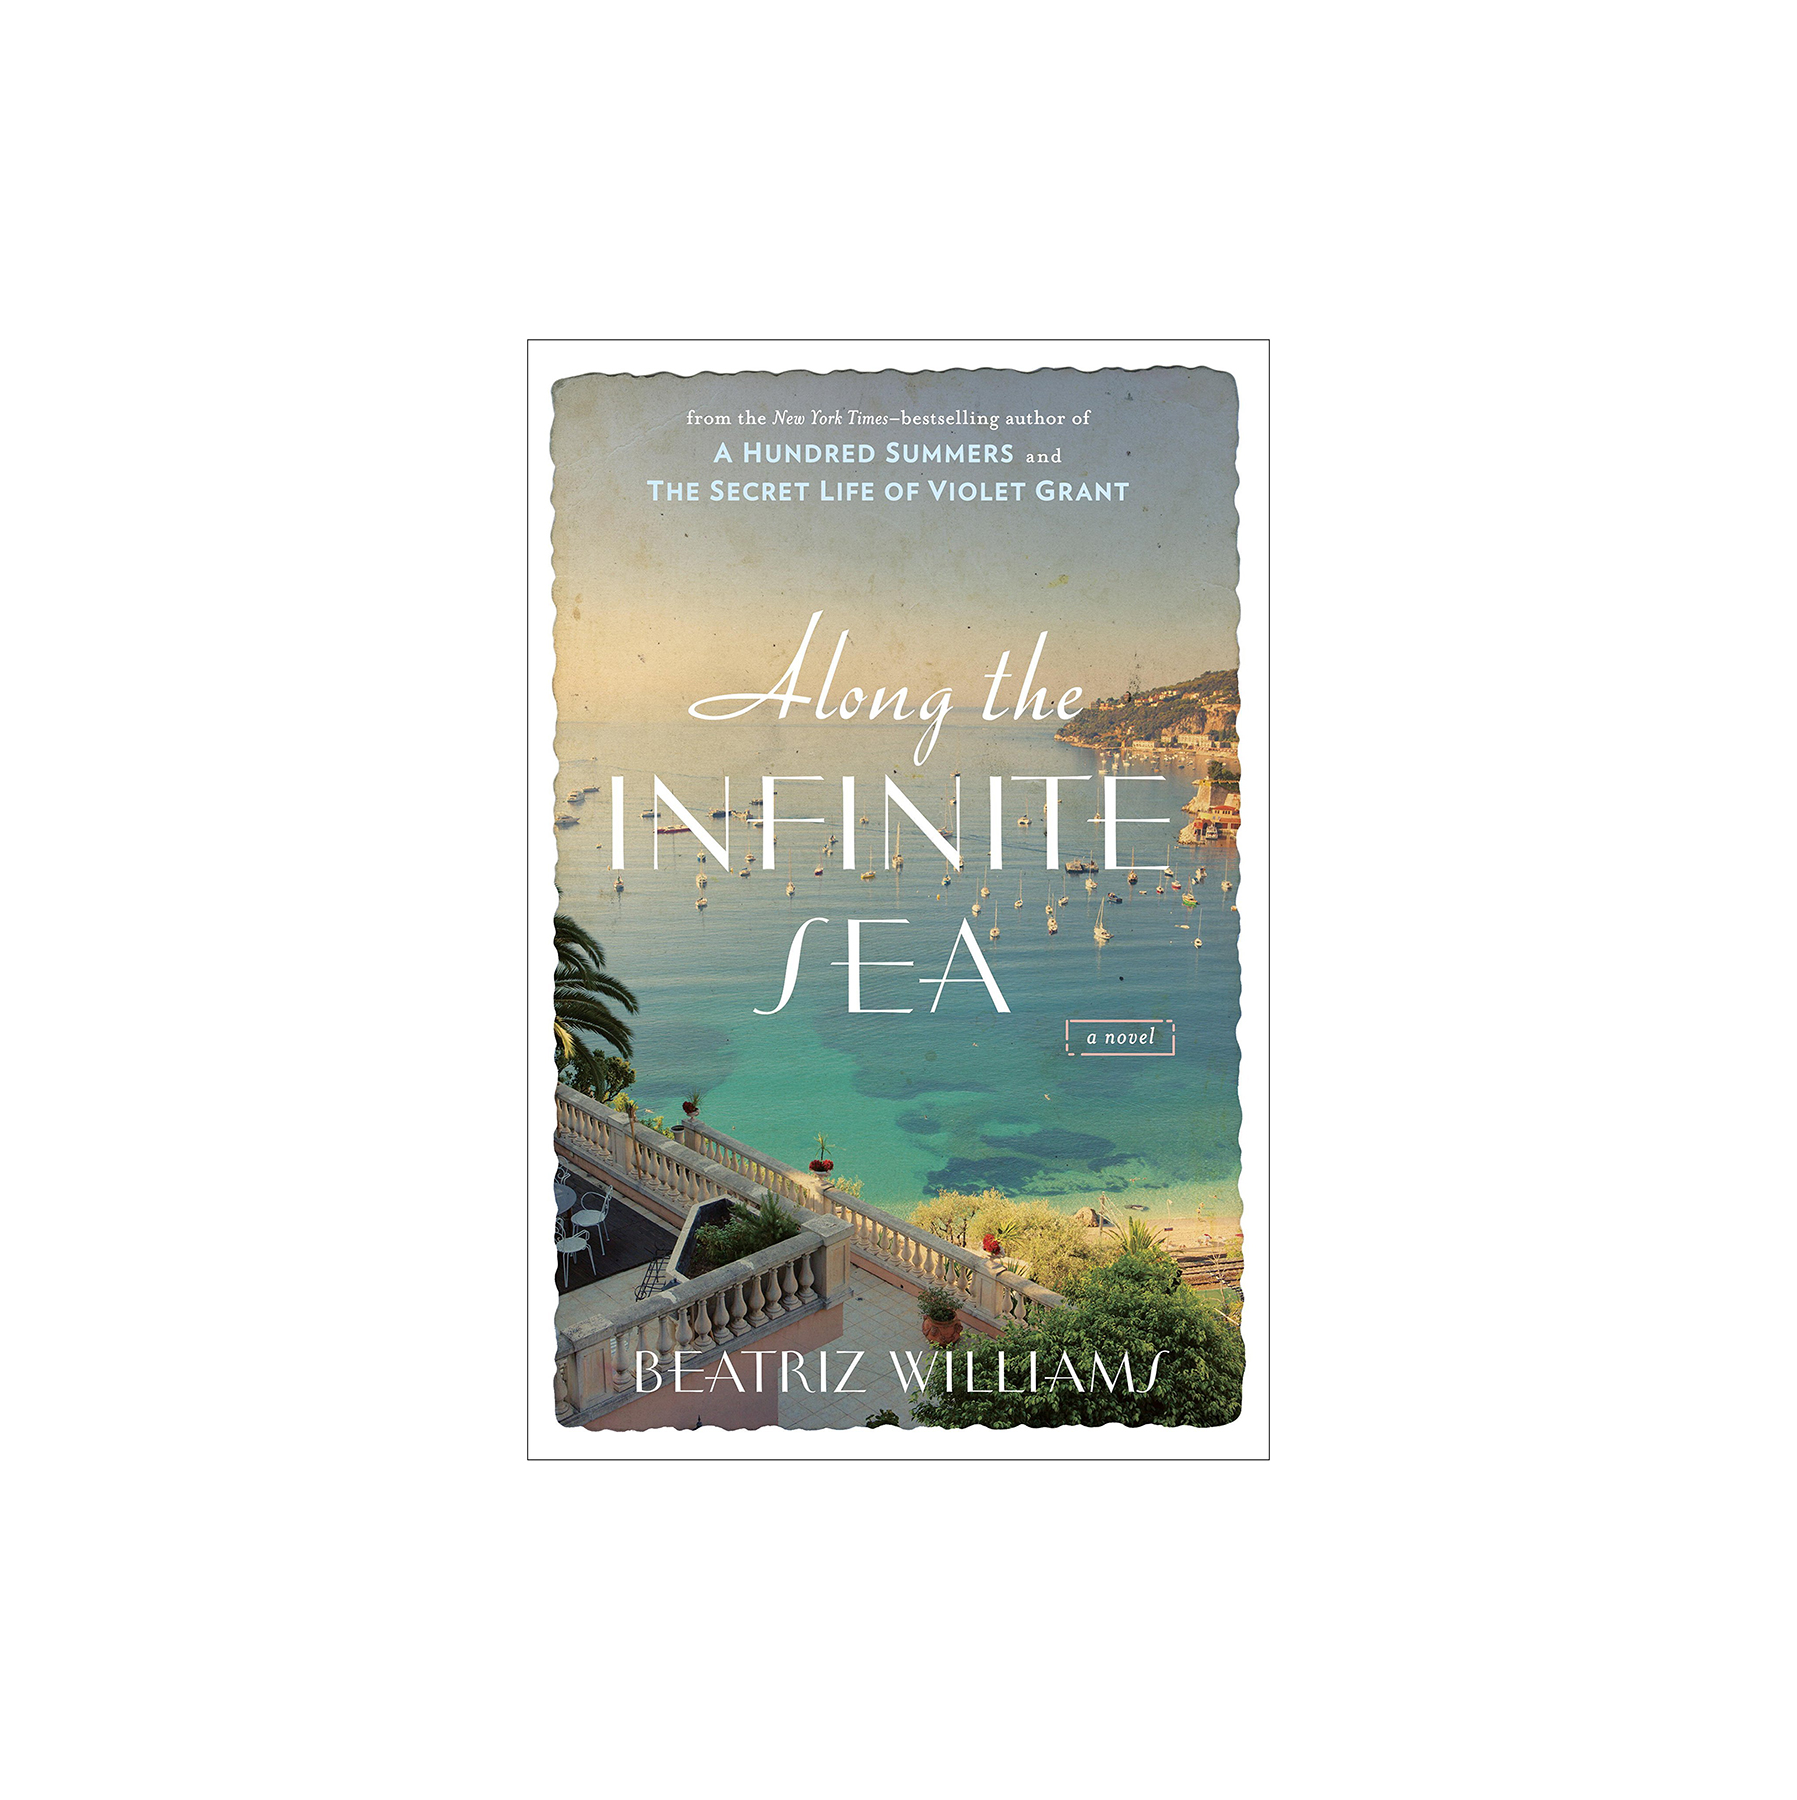 Along the Infinite Sea, by Beatriz Williams